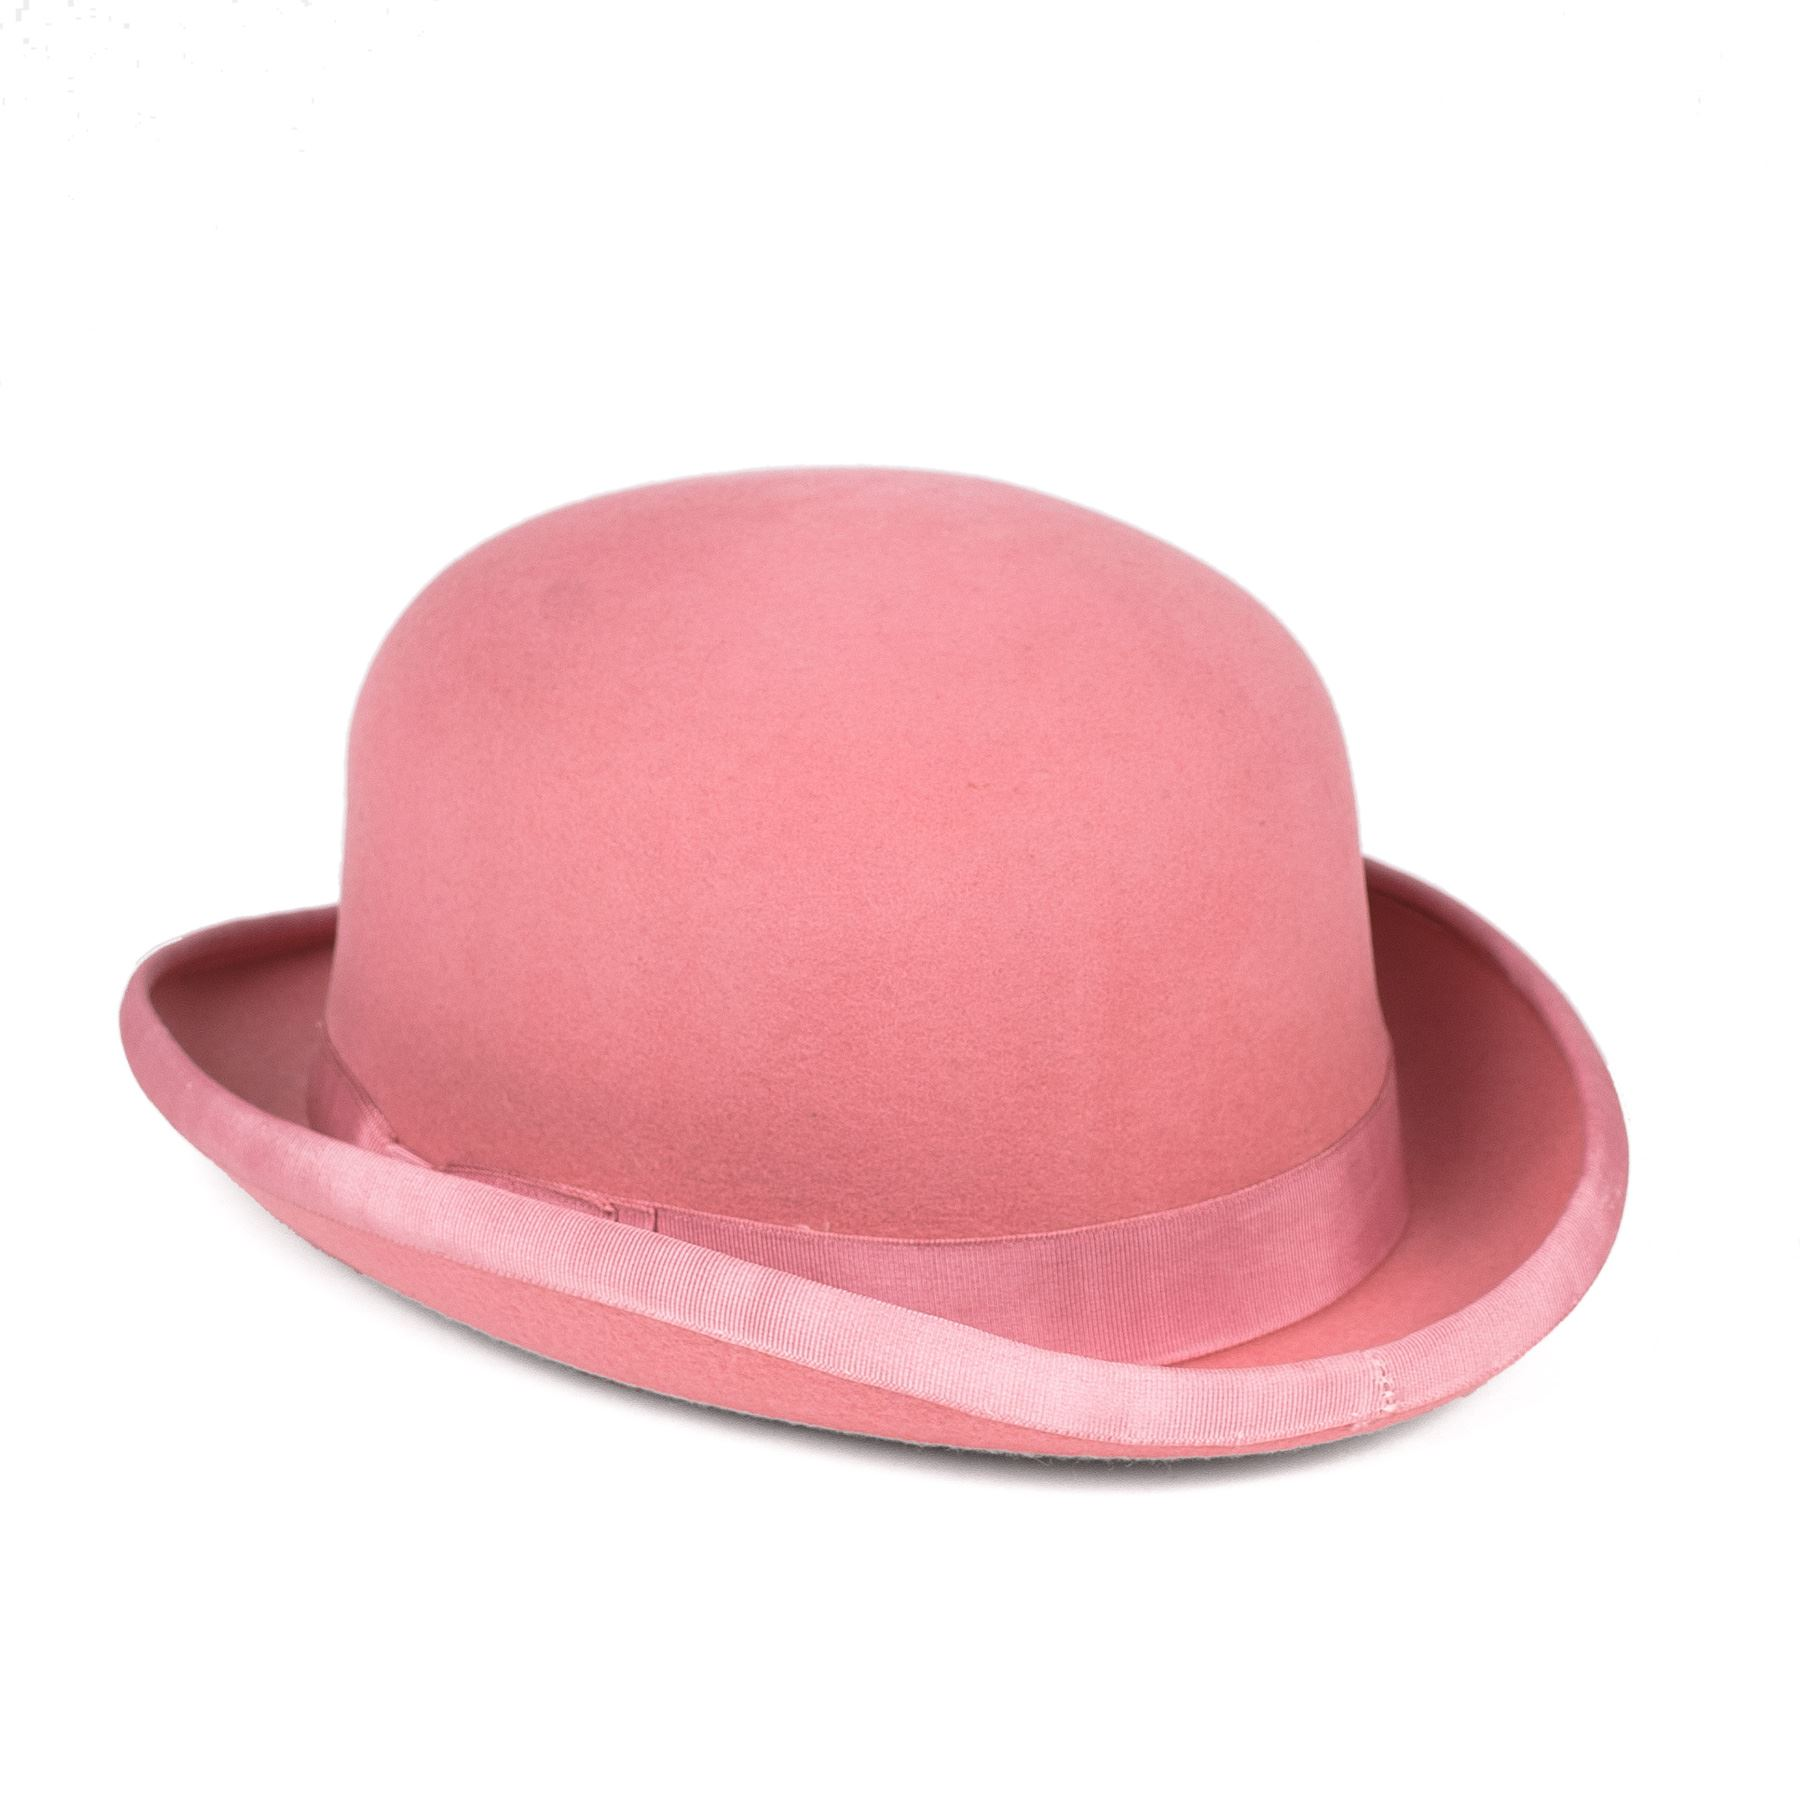 0cd0f4e1392c3 Classic 100 Wool Satin Lined Pink Bowler Hat Edged With Grosgrain Ribbon    Bow 59 Cm. About this product. Picture 1 of 2  Picture 2 of 2